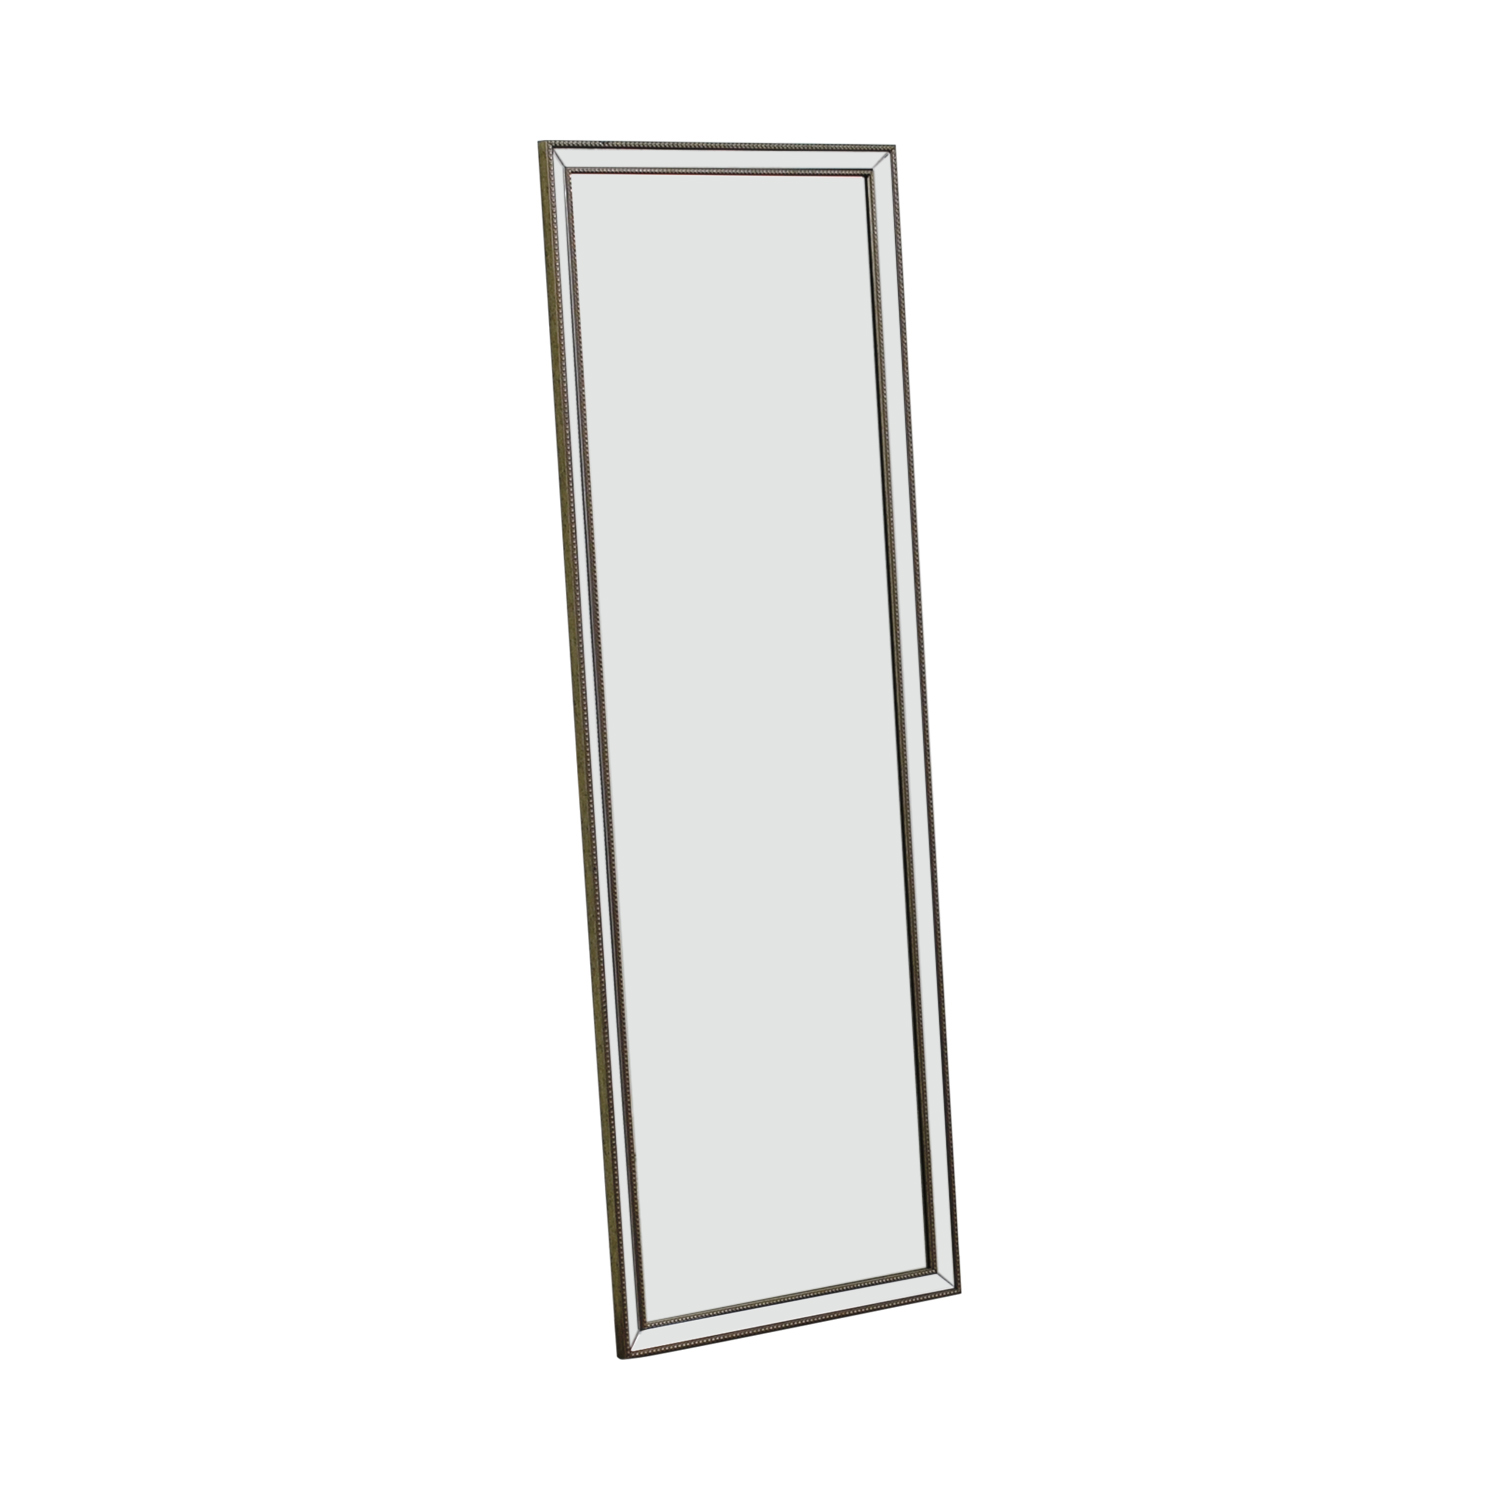 Full Length Wall Mirror